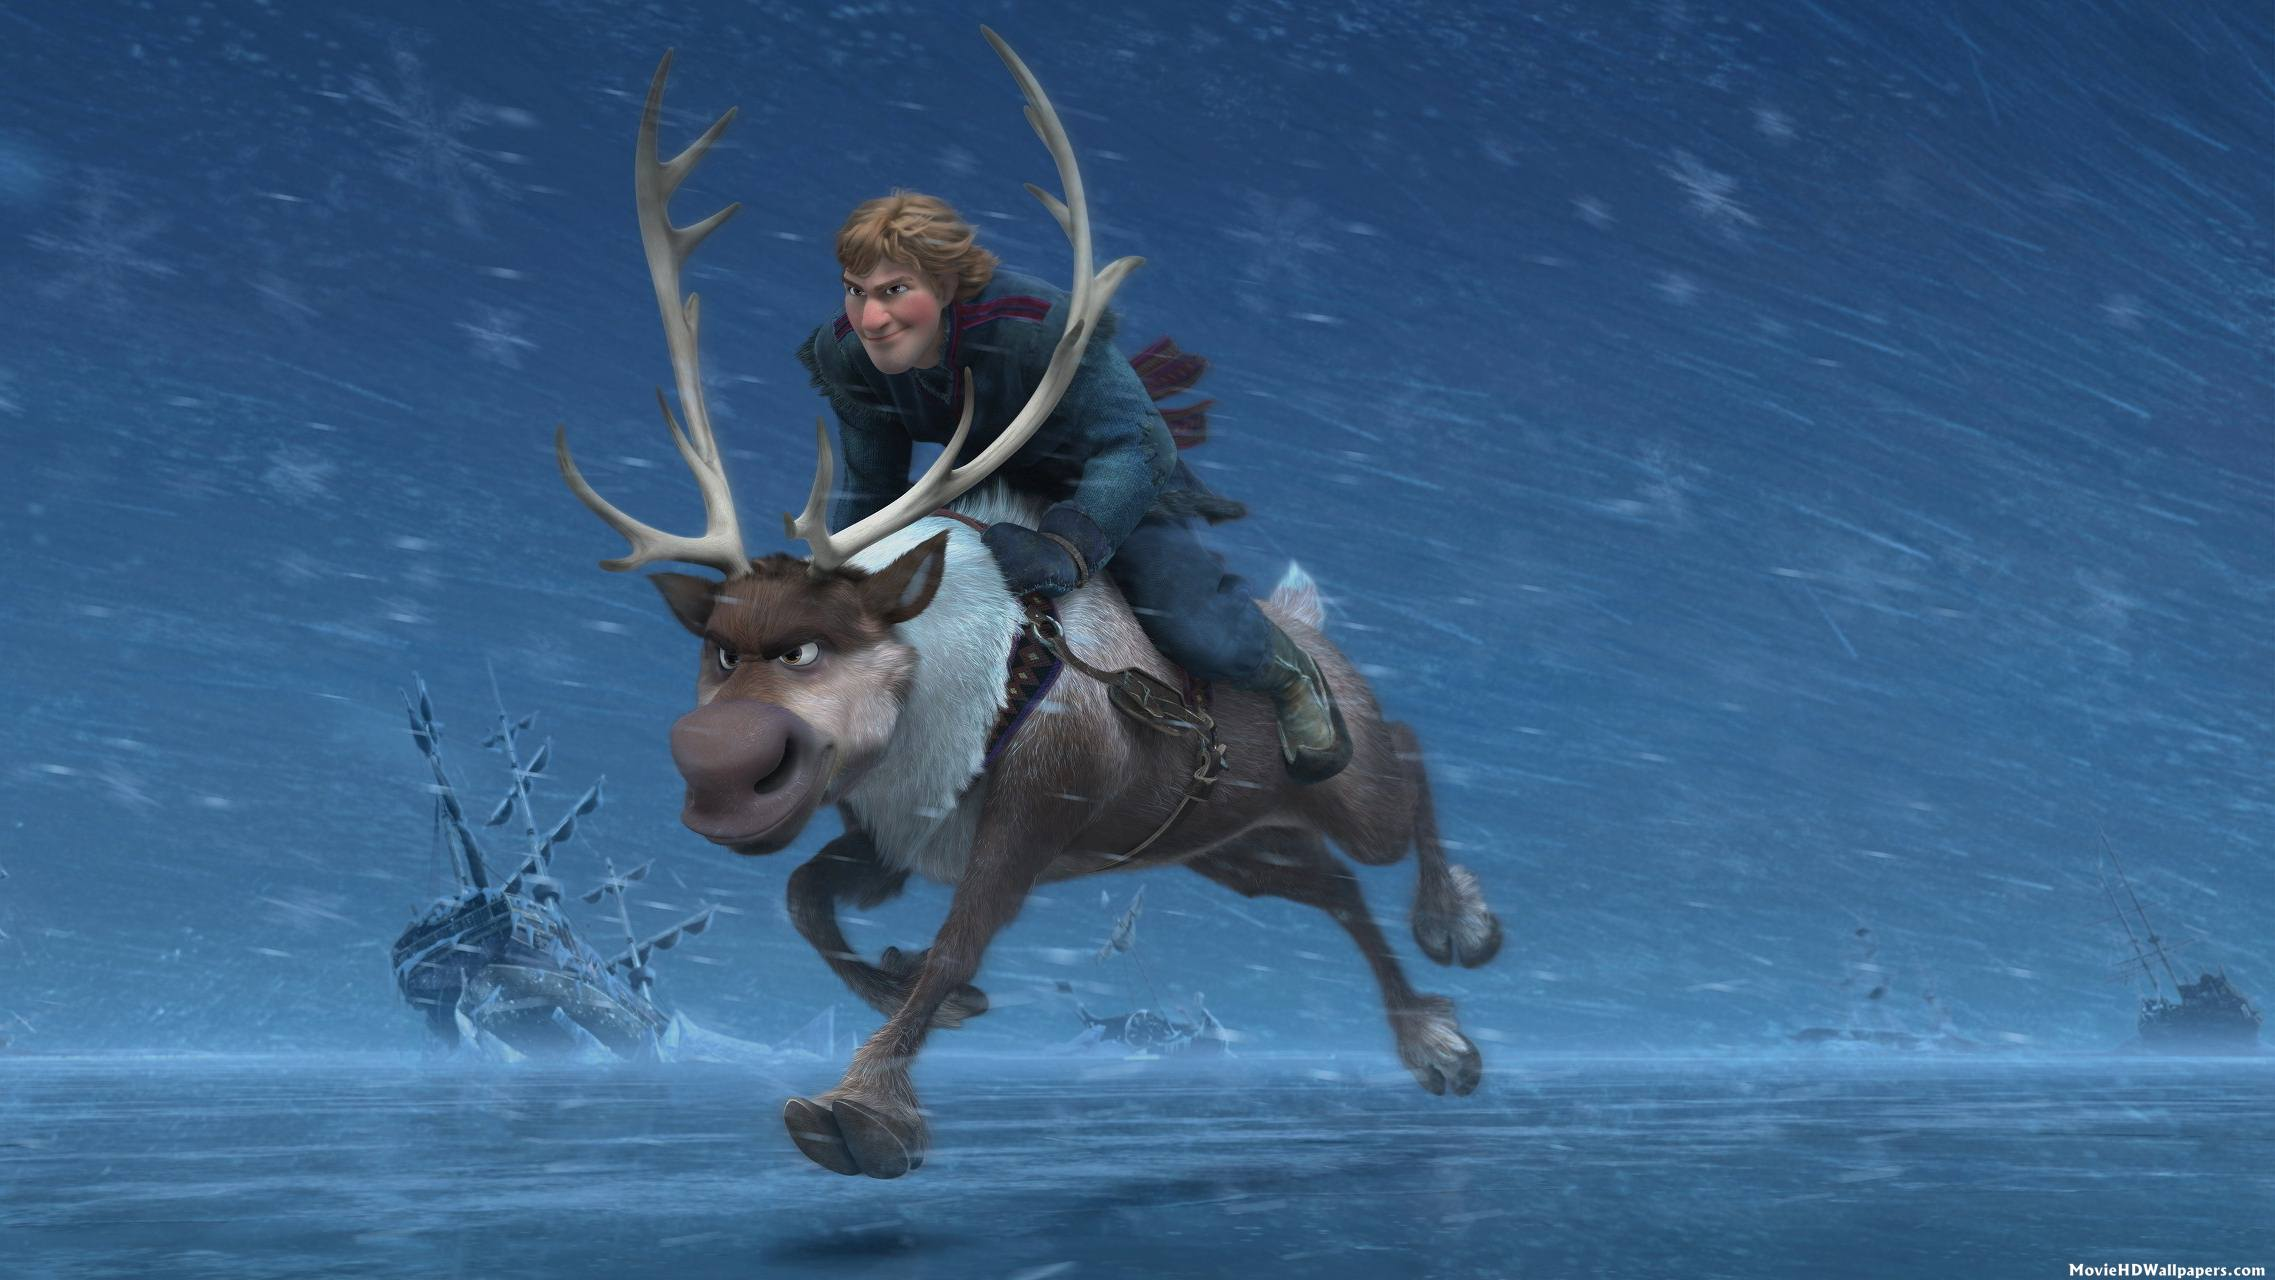 Frozen Movie Wallpapers [HD Facebook Timeline Covers